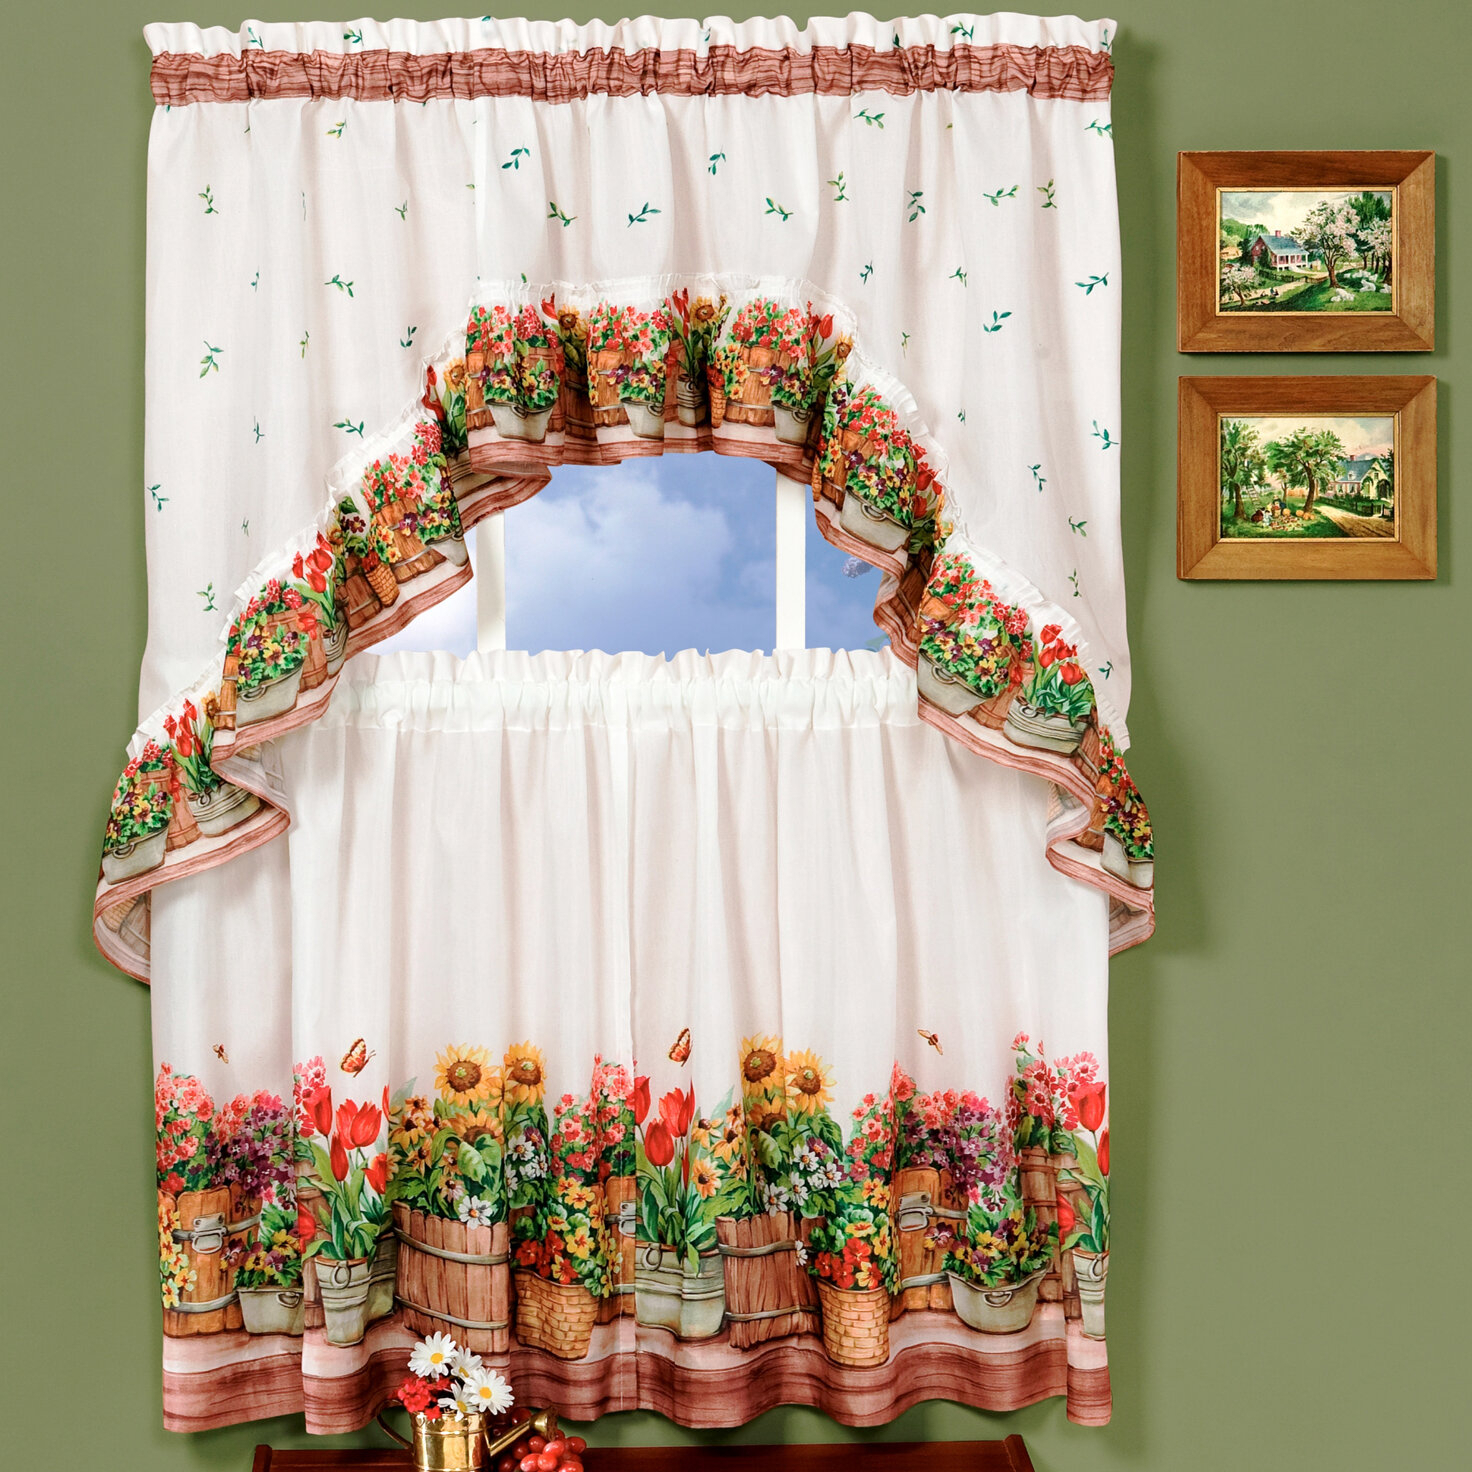 Country Garden Valance And Tier Set Regarding Chateau Wines Cottage Kitchen Curtain Tier And Valance Sets (View 9 of 20)